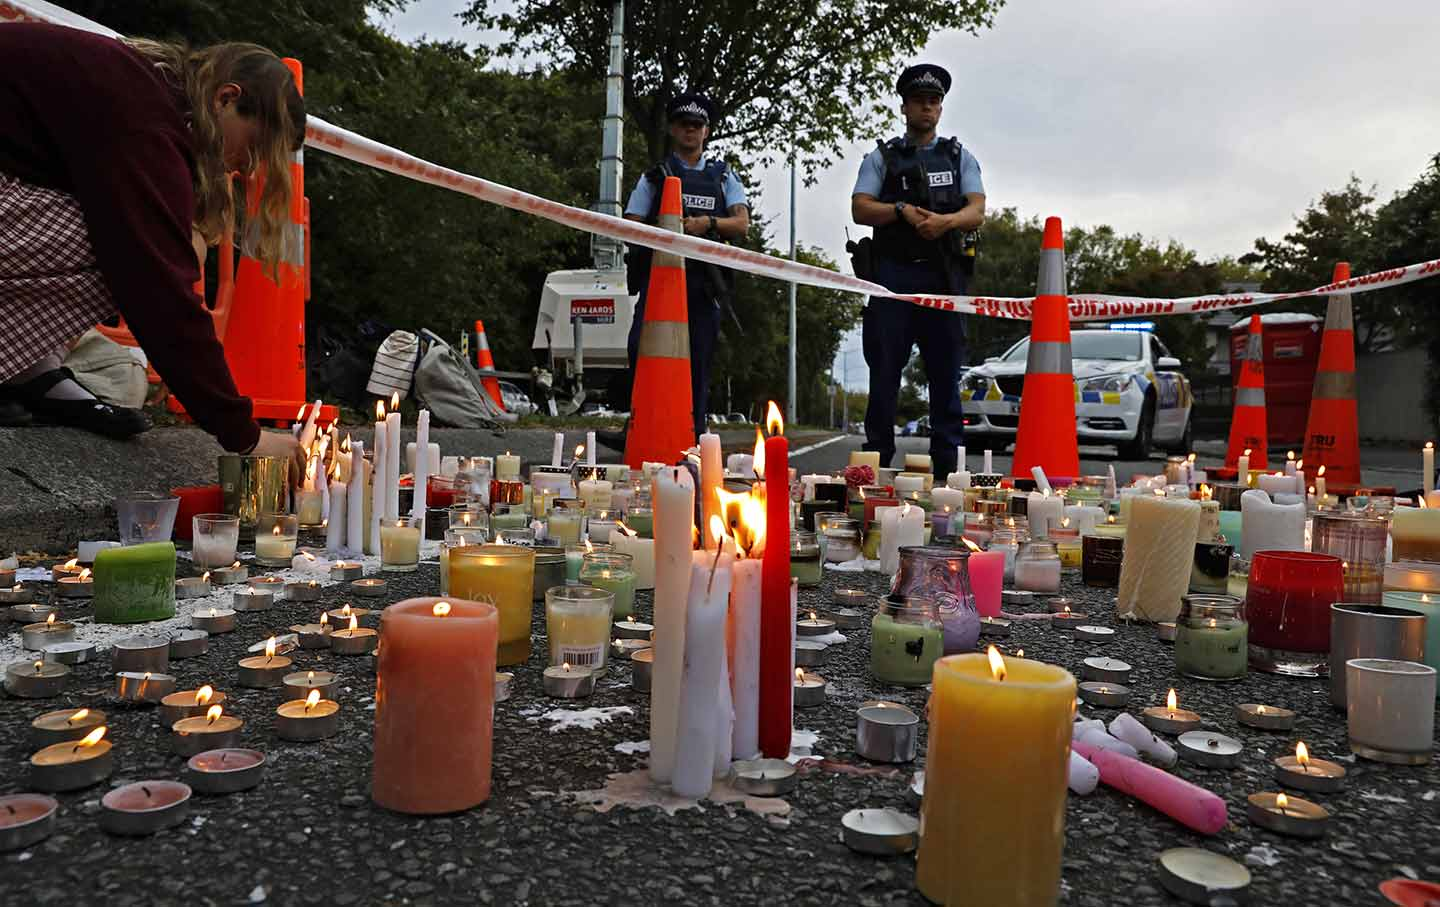 New Zealand Mosque Attack Photo: Take Action Now: Stand Against Islamophobia